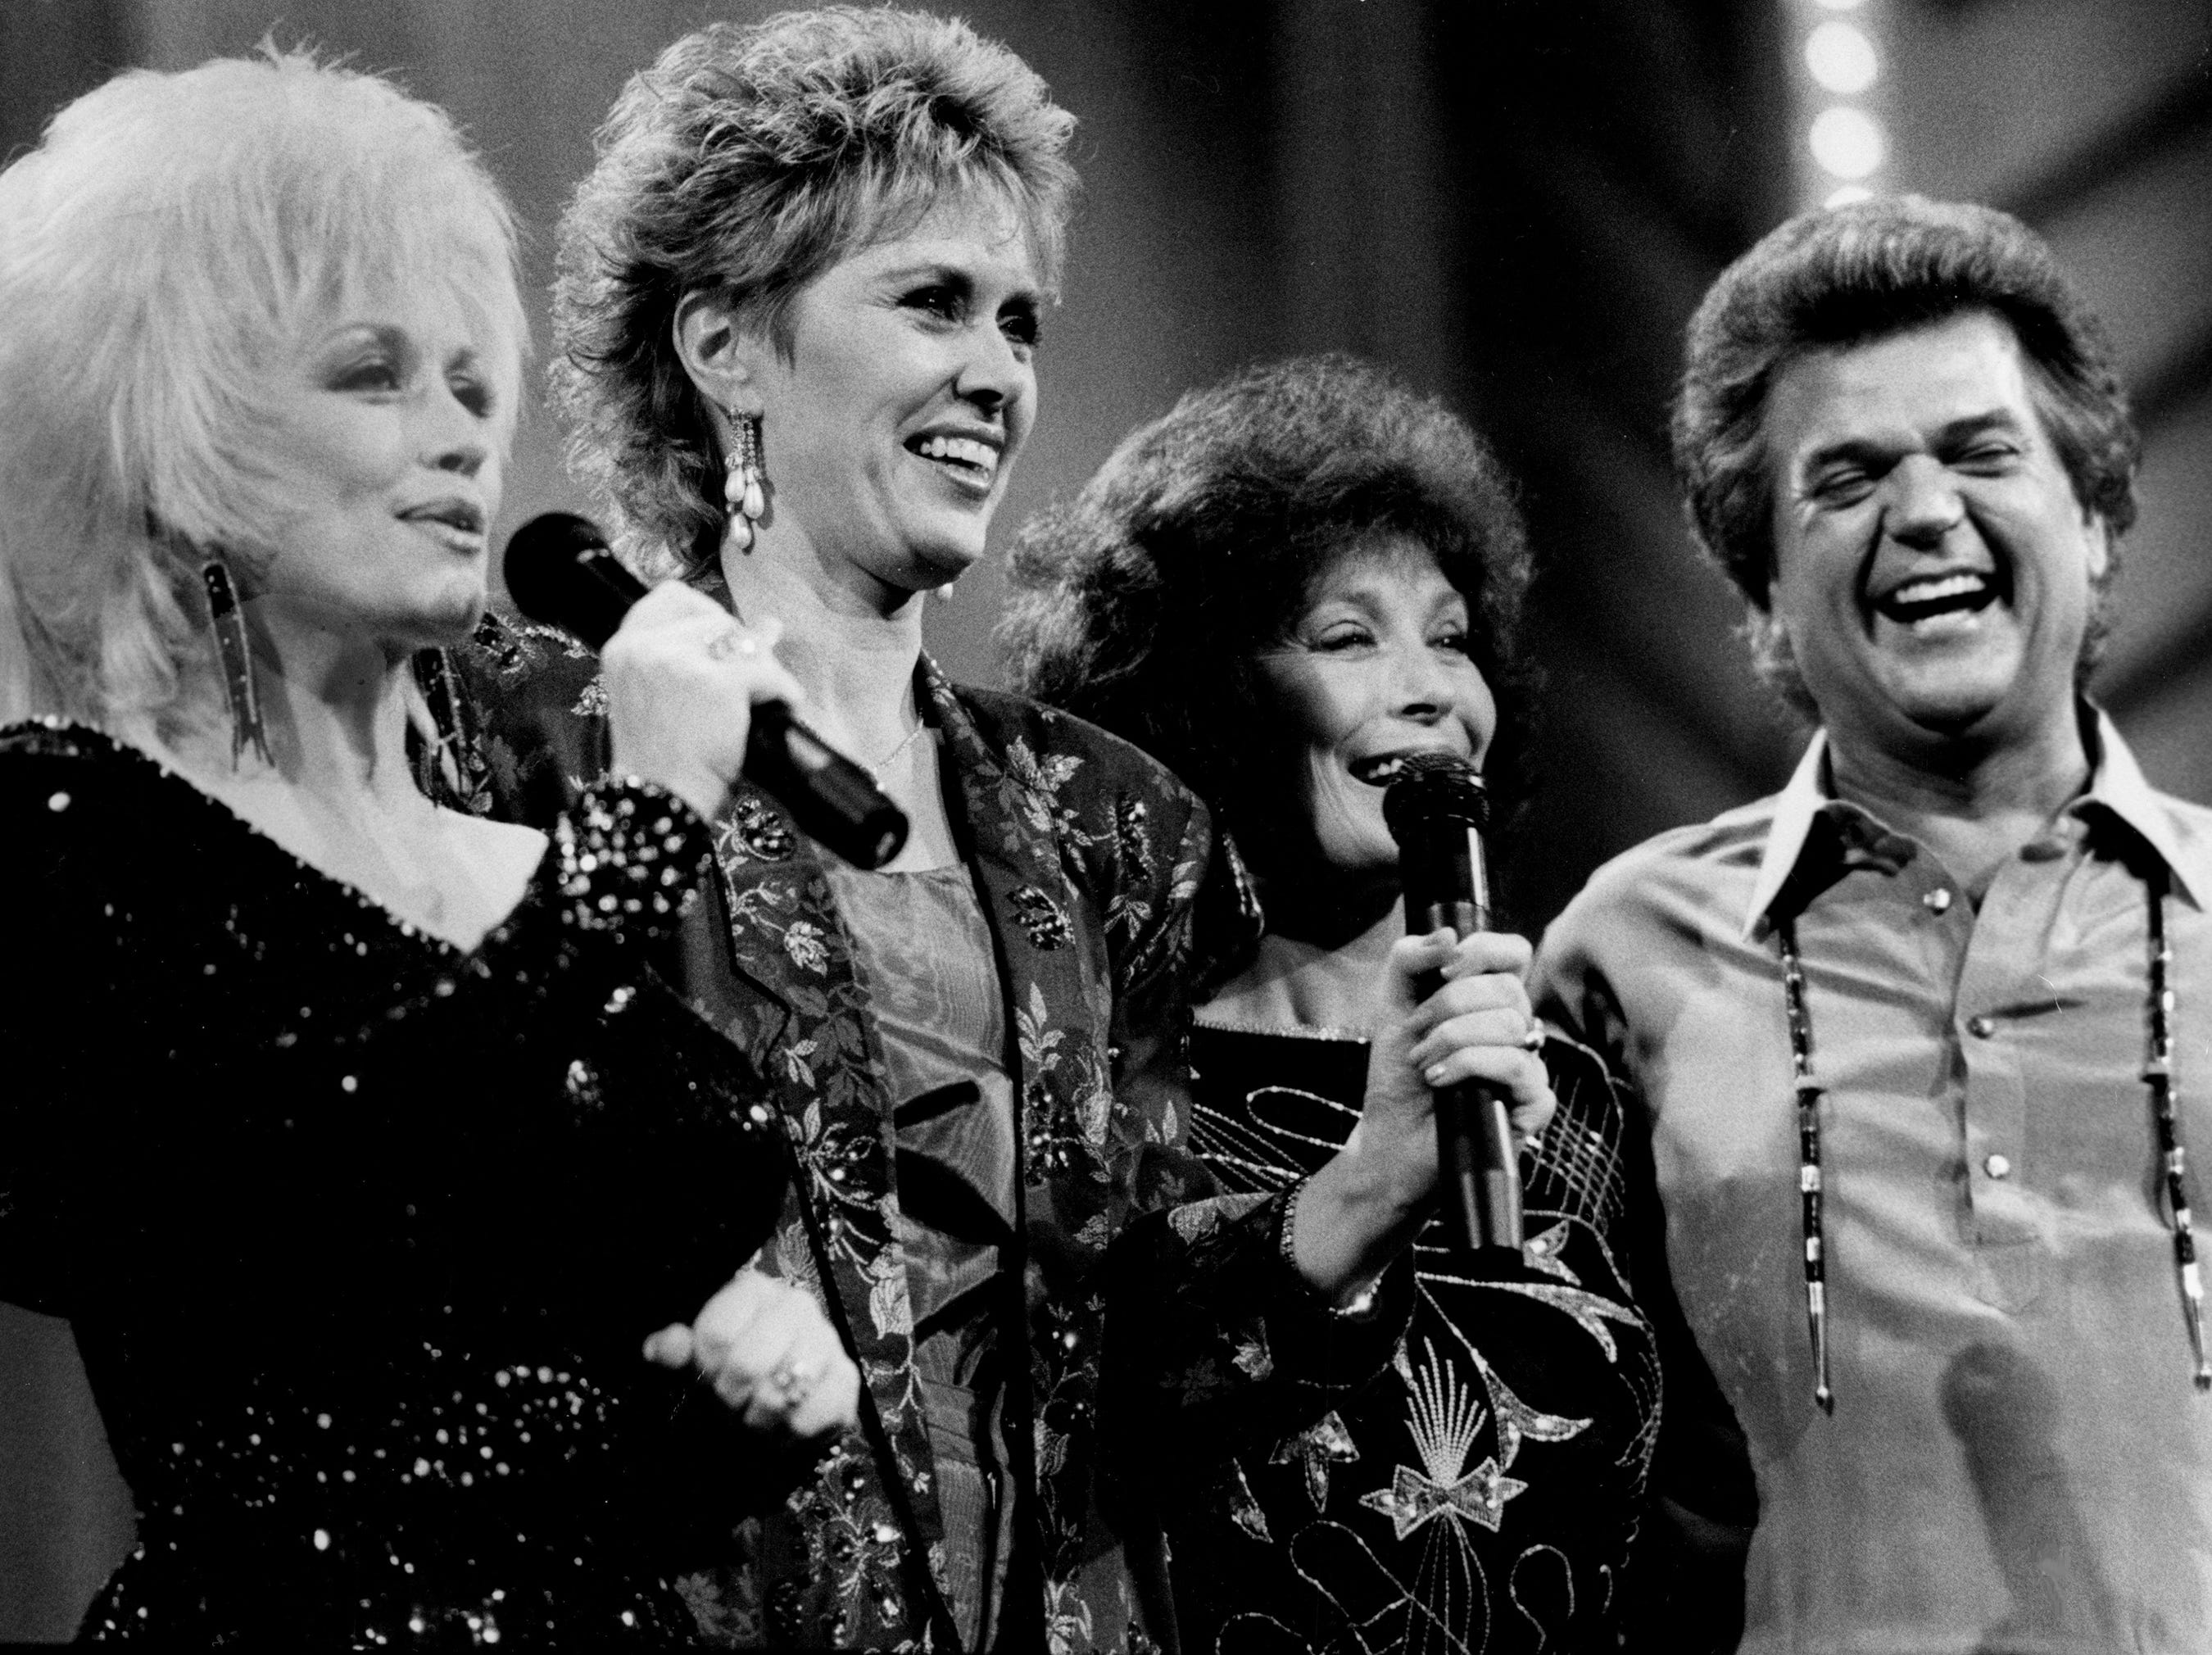 Dolly Parton, left, Janie Fricke, Loretta Lynn and Conway Twitty conclude a segment of the fan-voted Music City News Awards show celebrating the annual event's 20th anniversary June 9, 1986. Lynn was honored with the Living Legend award and had a reunion with Twitty.